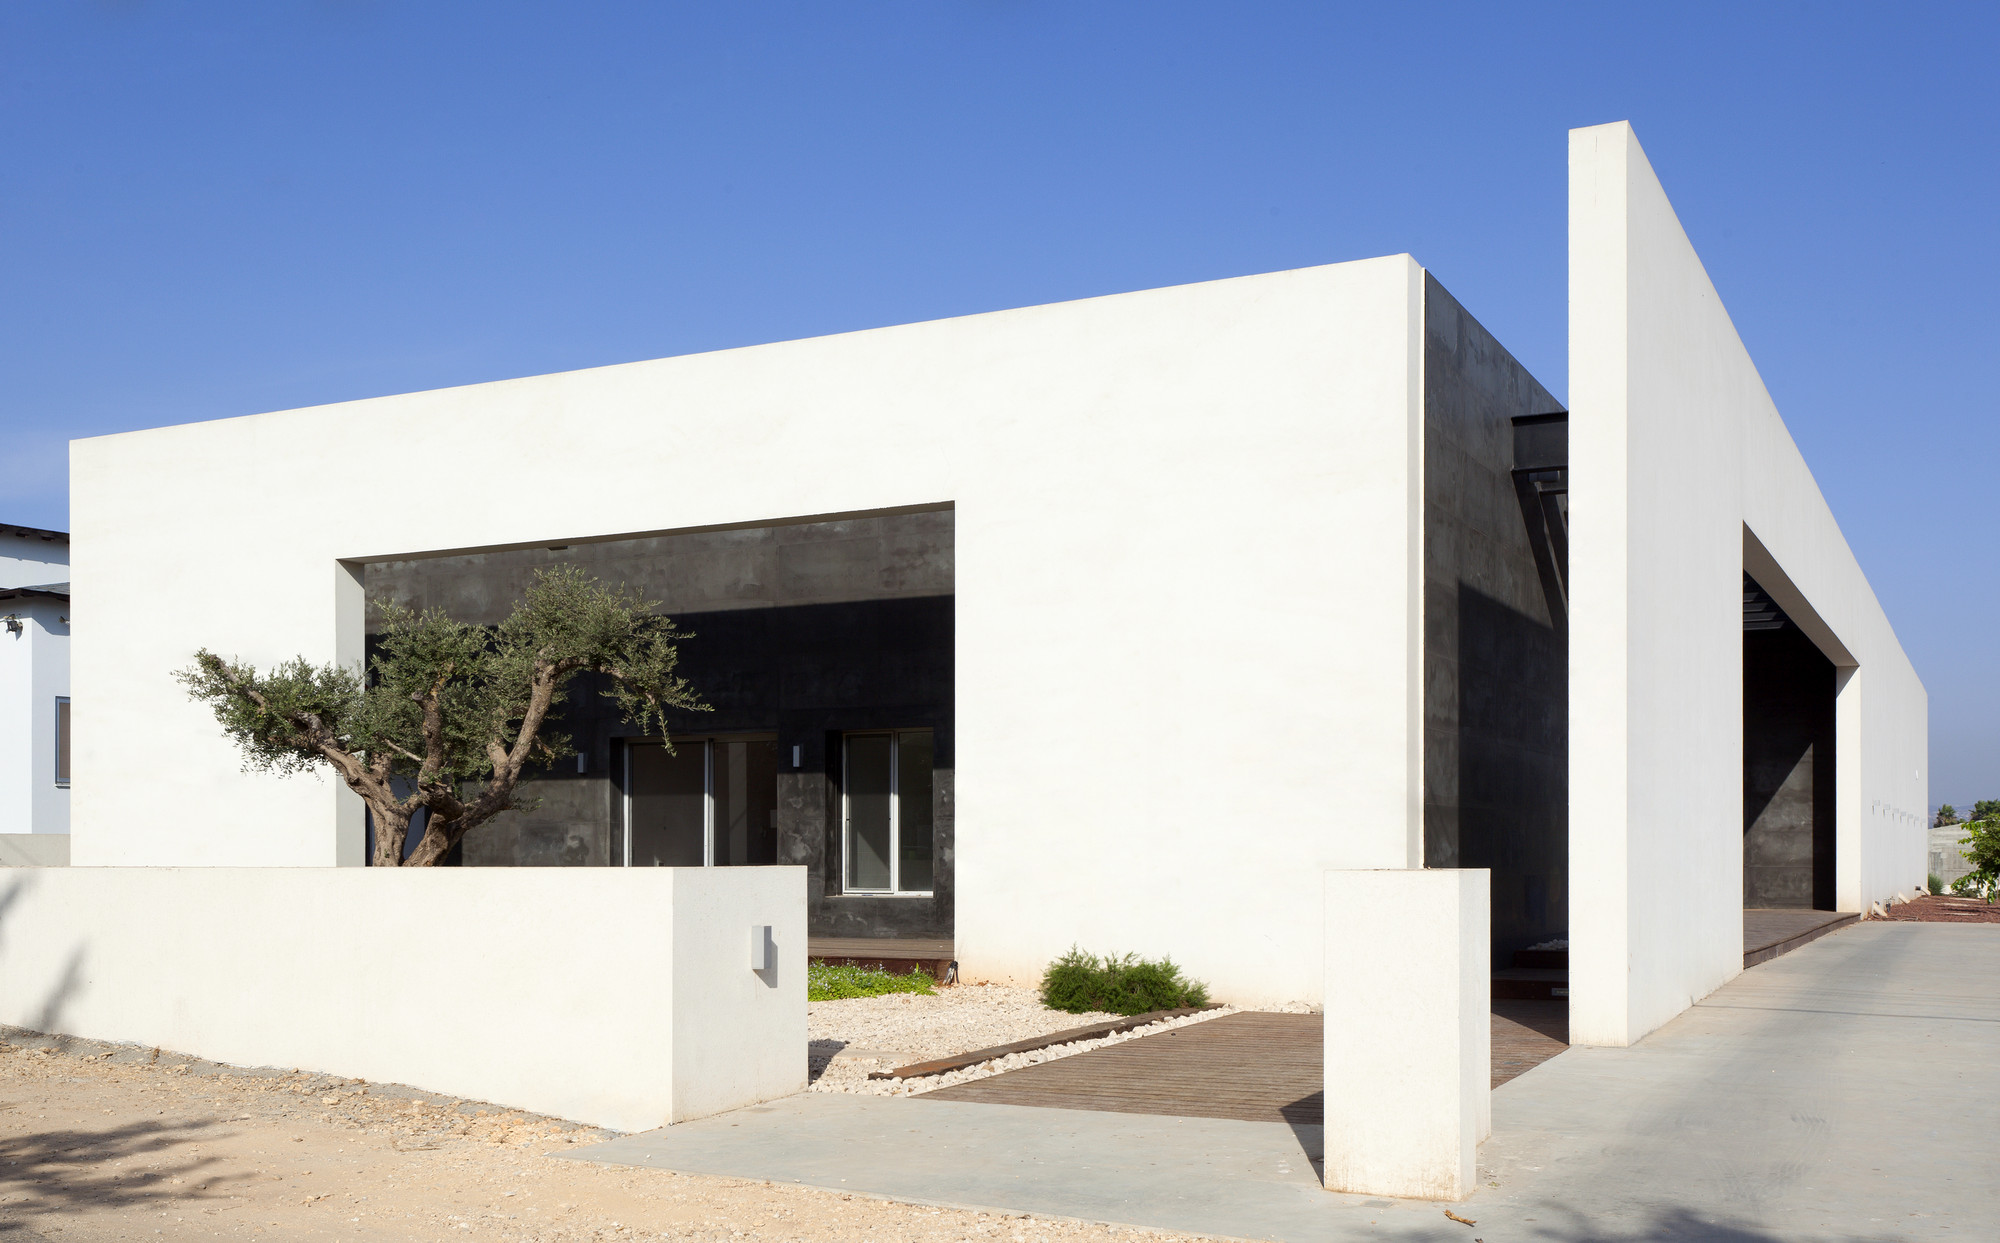 House in Talmei Elazar / Dan & Hila Israelevitz Architects, © Elad Sarig